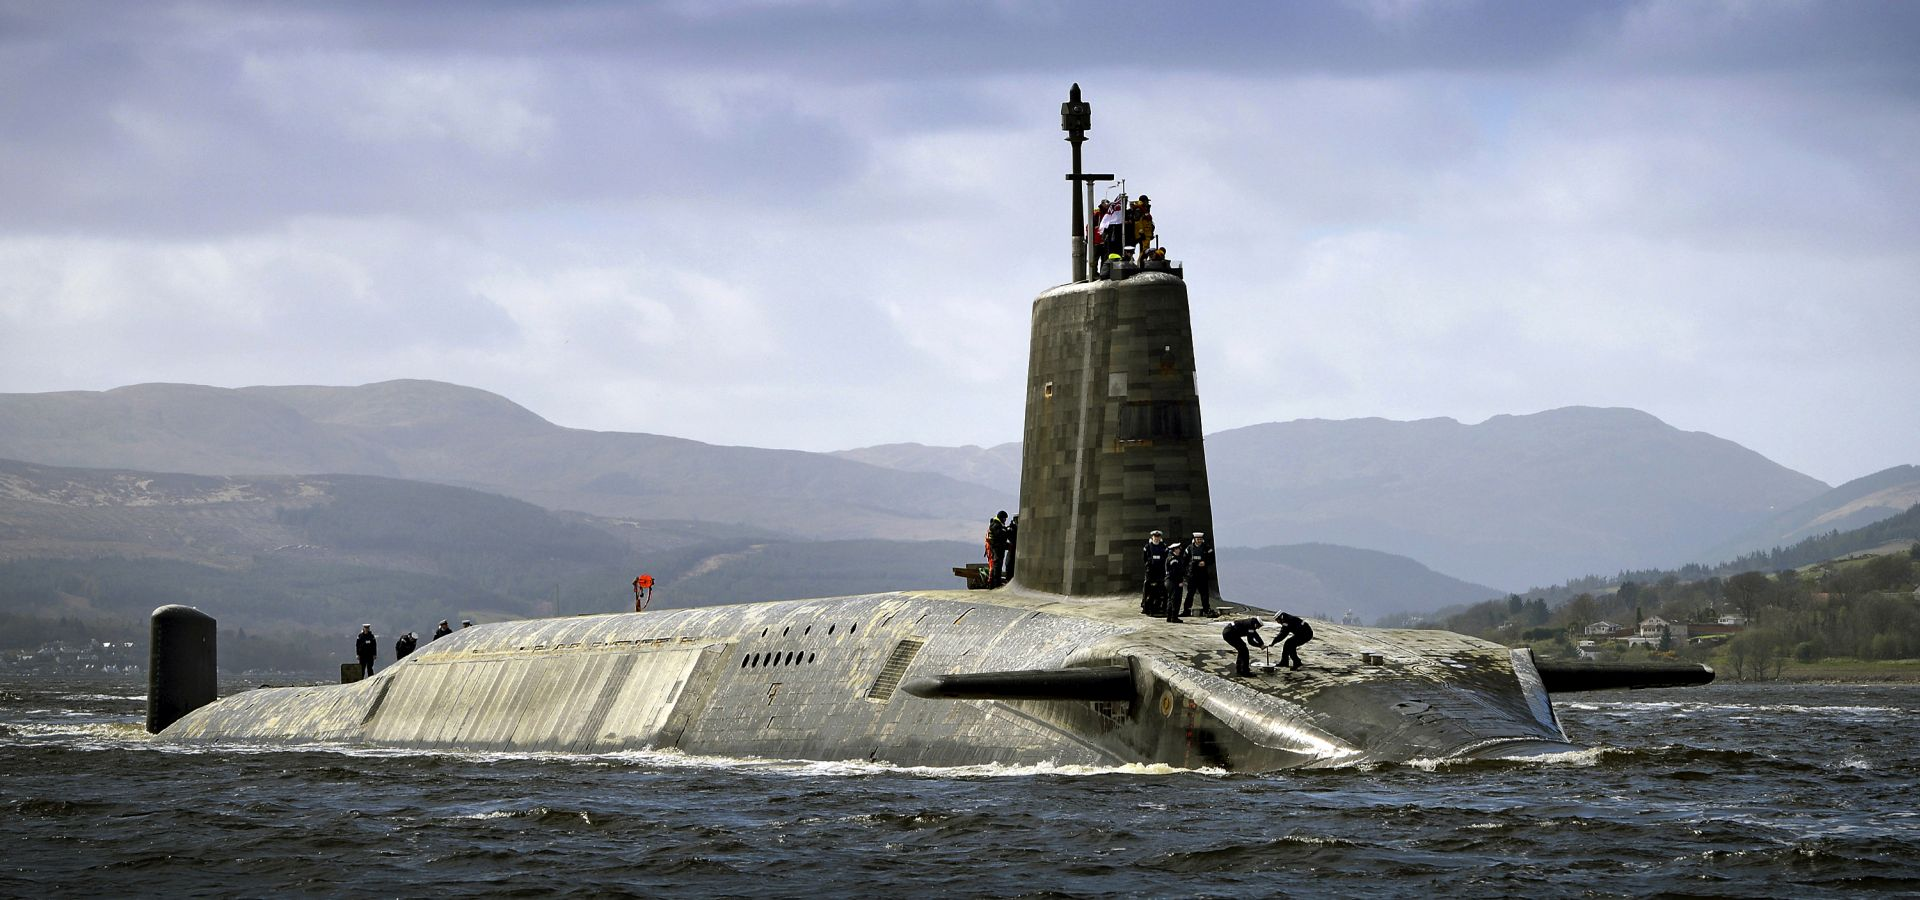 HMS Vigilant is the third Vanguard-class submarine of the Royal Navy. Vigilant carries the Trident ballistic missile, the United Kingdom's nuclear deterrent.